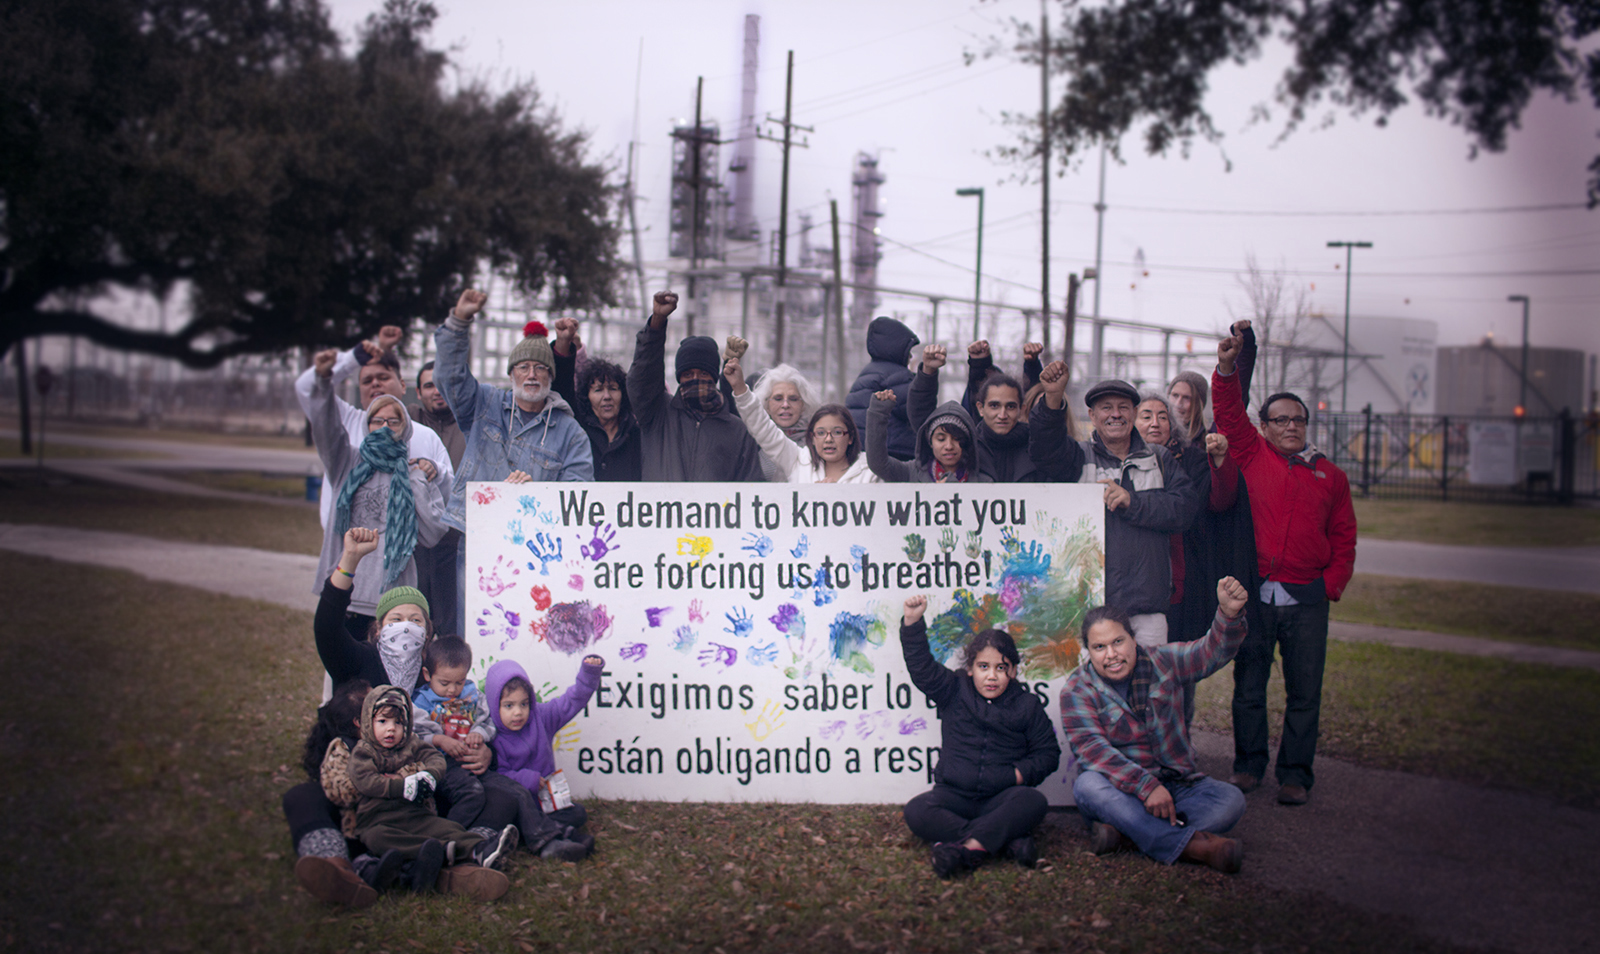 Manchester com'y Houston surrounded by refineries 'We demand to know what you are forcing us to breathe', web